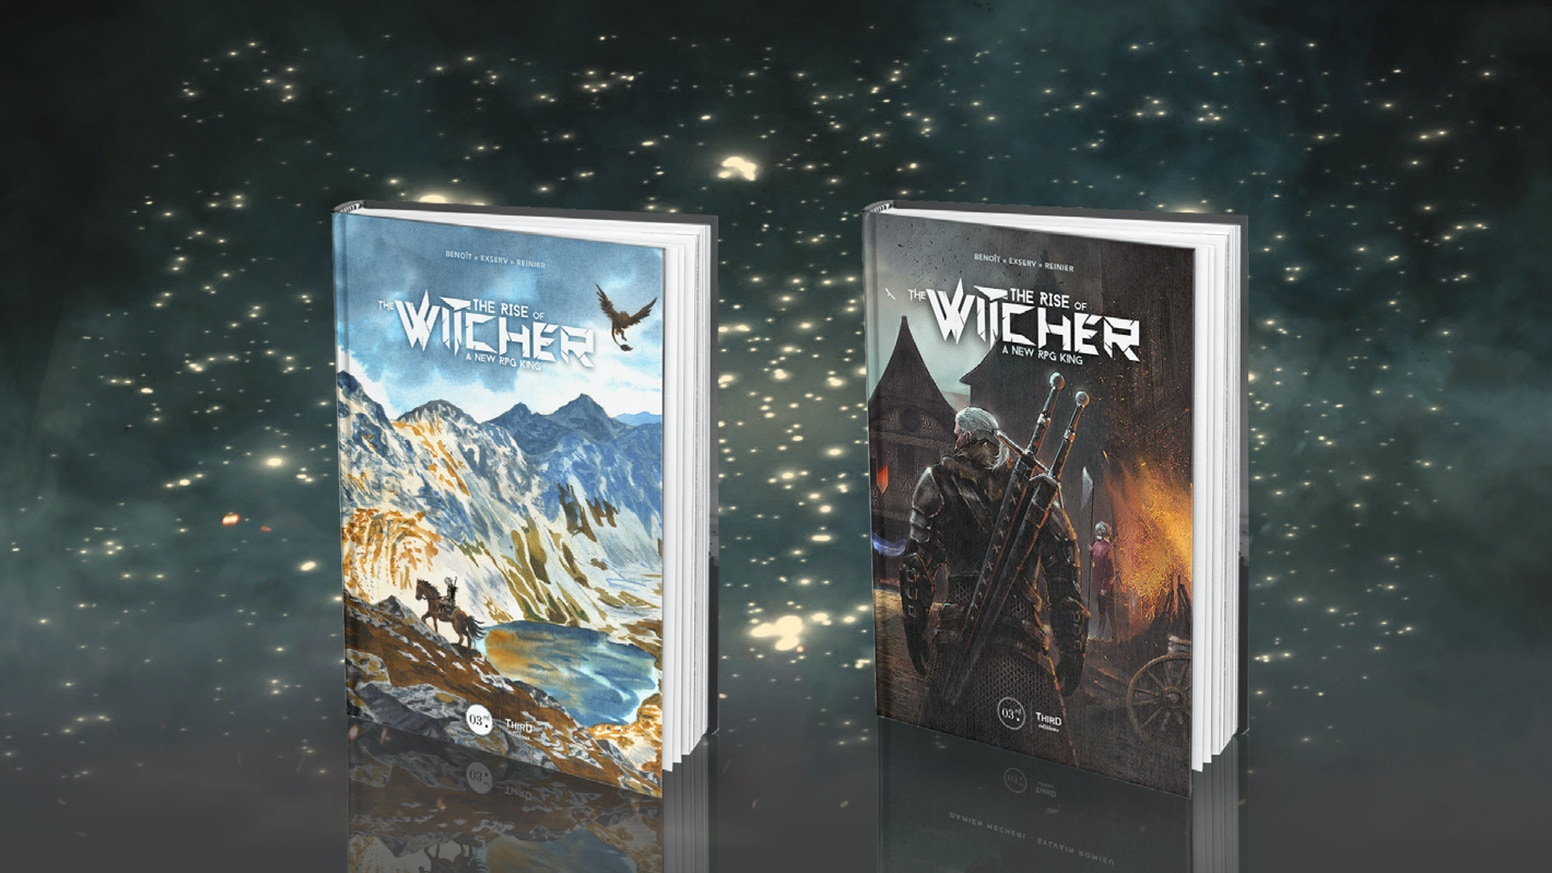 After three successful KS campaigns, we are back for a fourth ride and a new book dedicated to The Witcher saga.